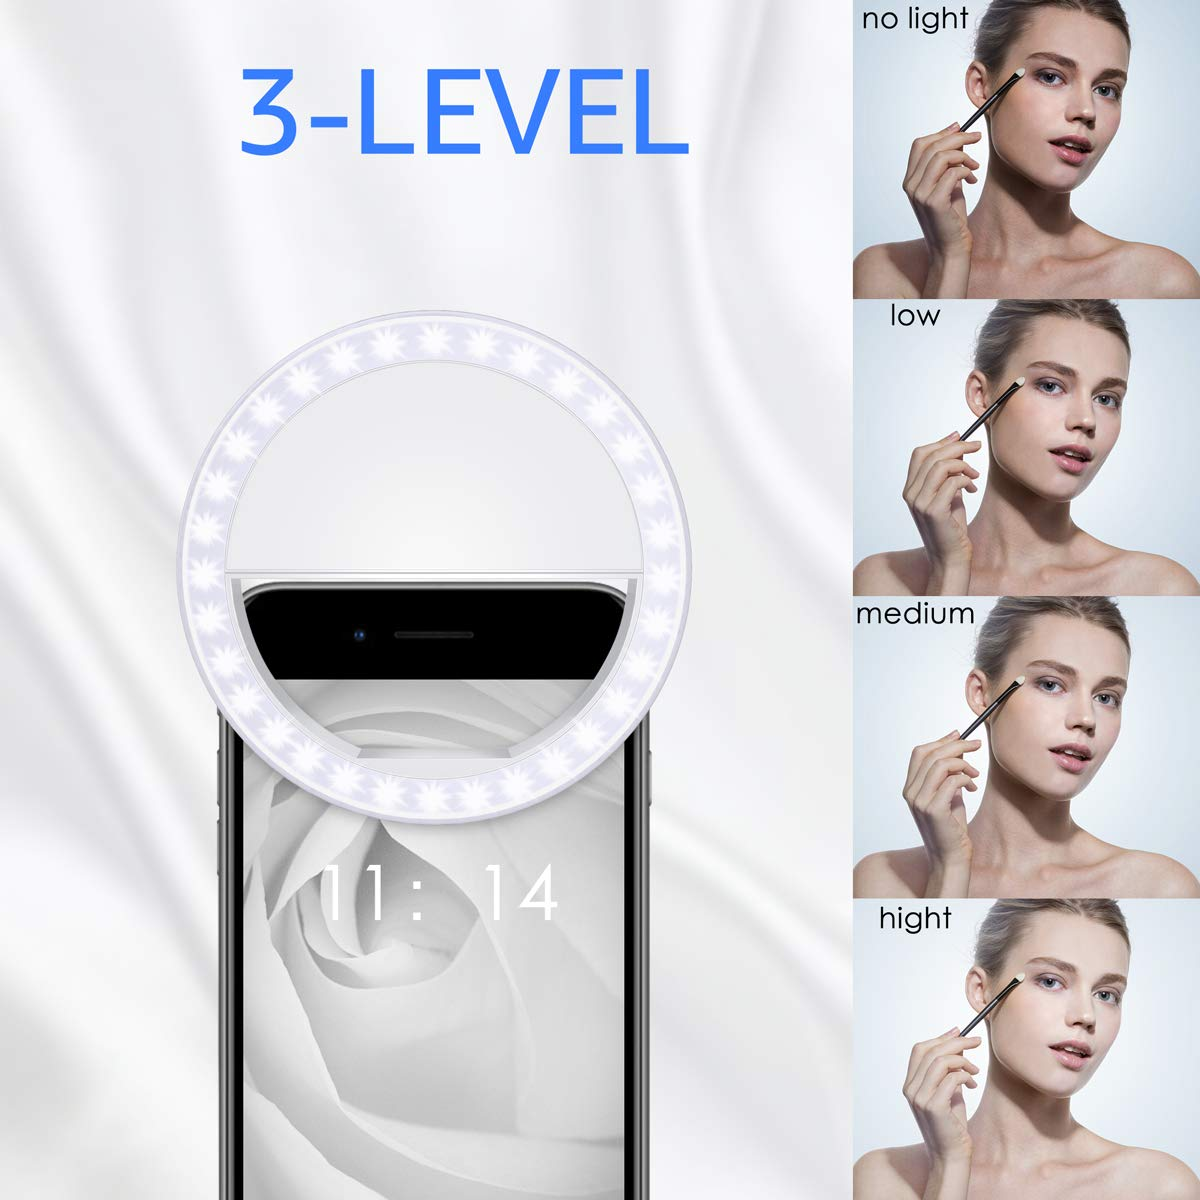 Image 2 - Smart Phone Camera  Androids Vlogging on Instagram Facebook YouTube   36 Rechargable LED Phone Light-in Phone Holders & Stands from Cellphones & Telecommunications